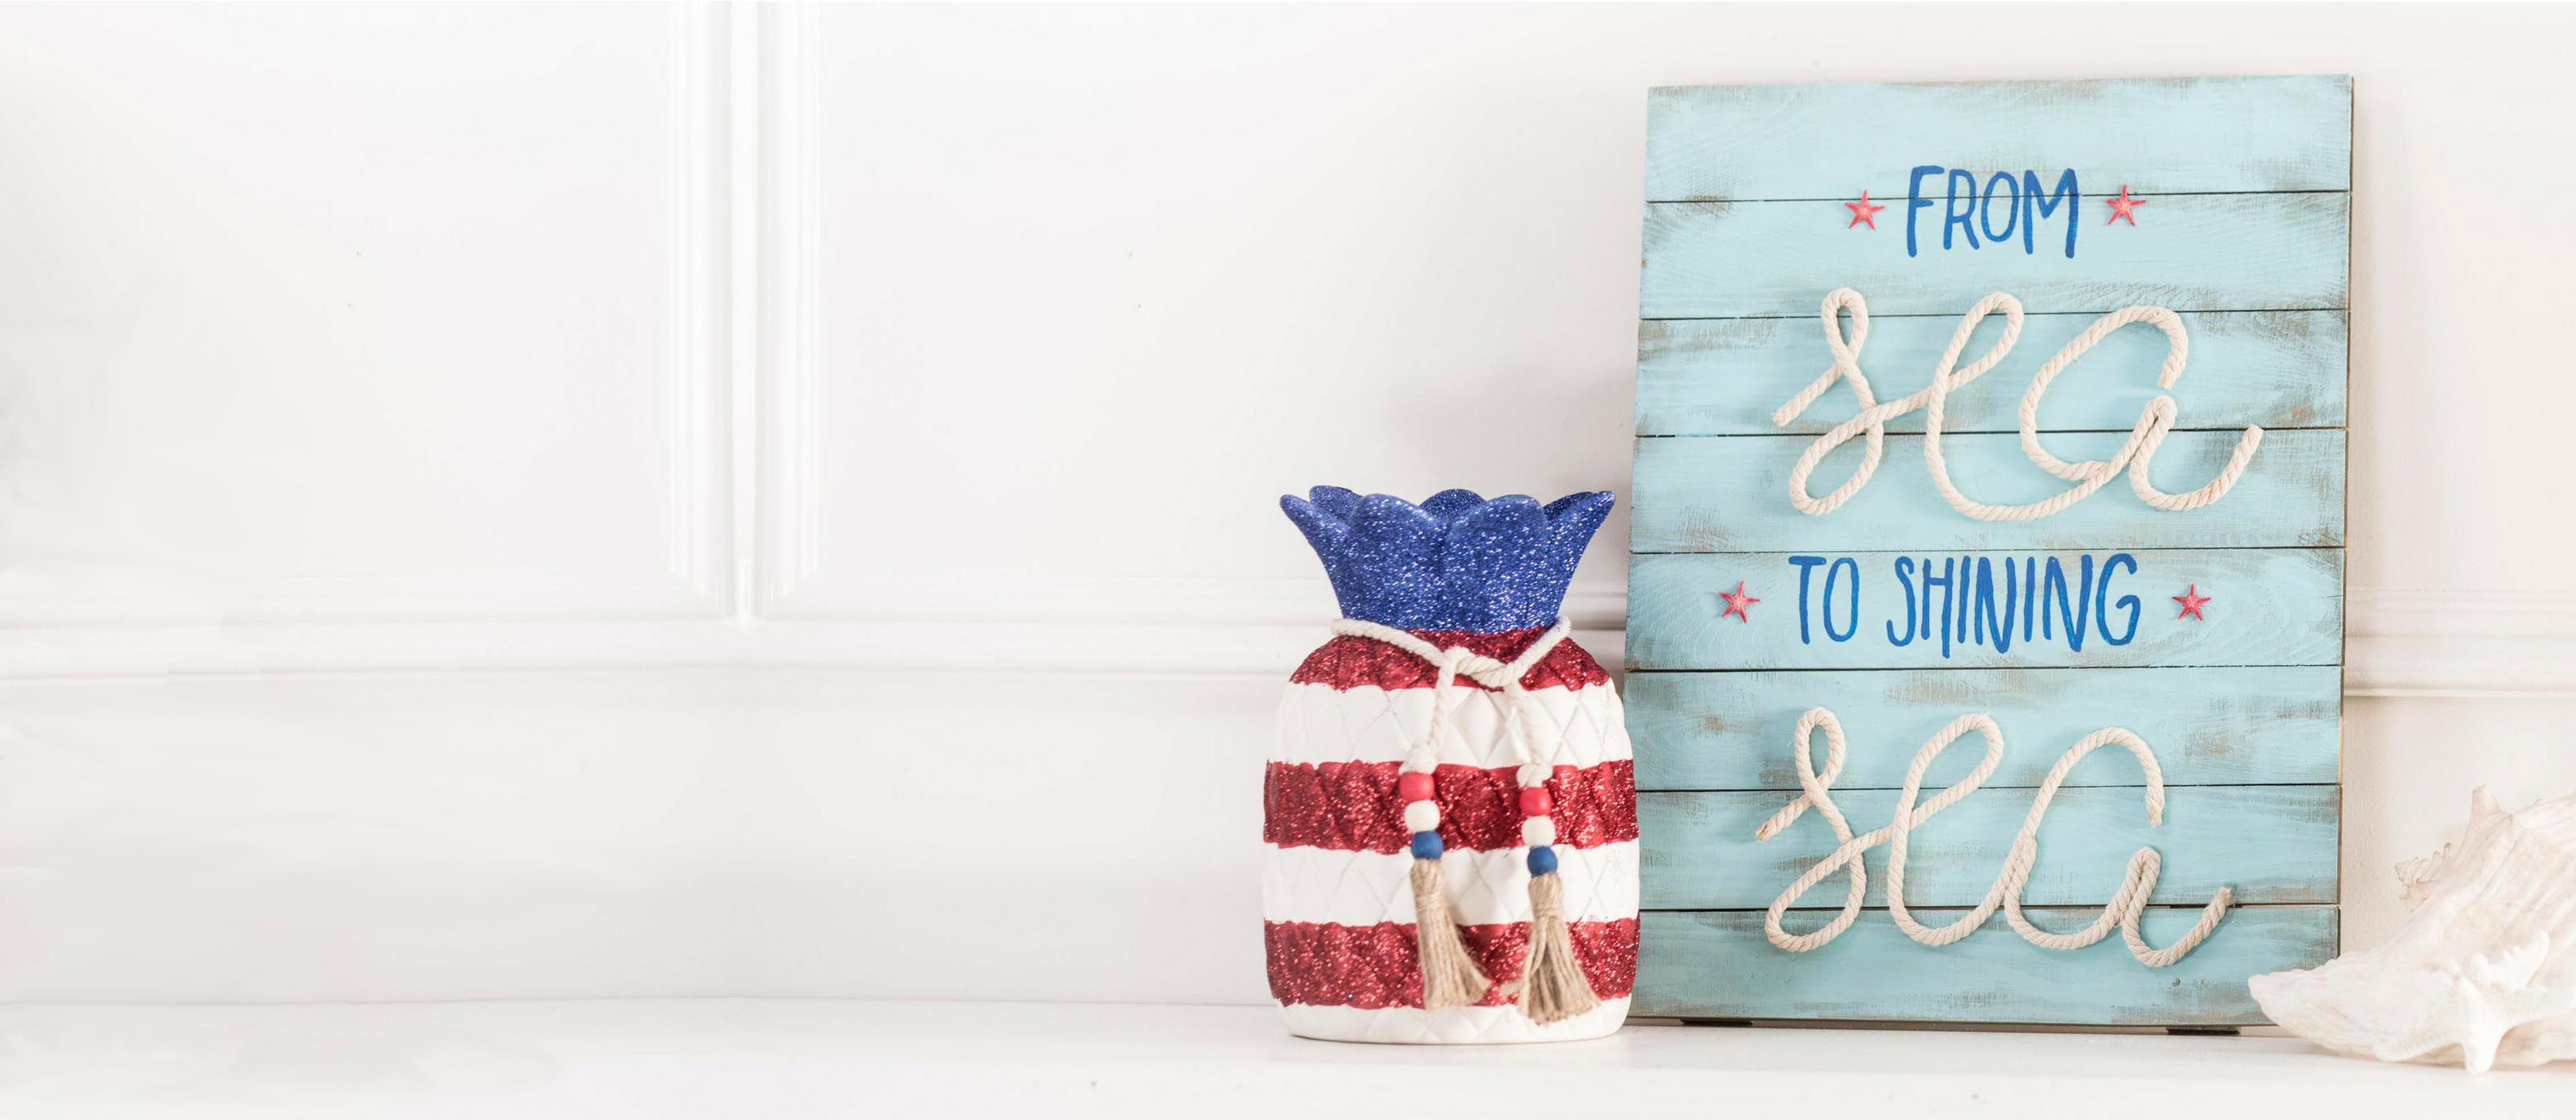 Diy Patriotic Nautical Sign